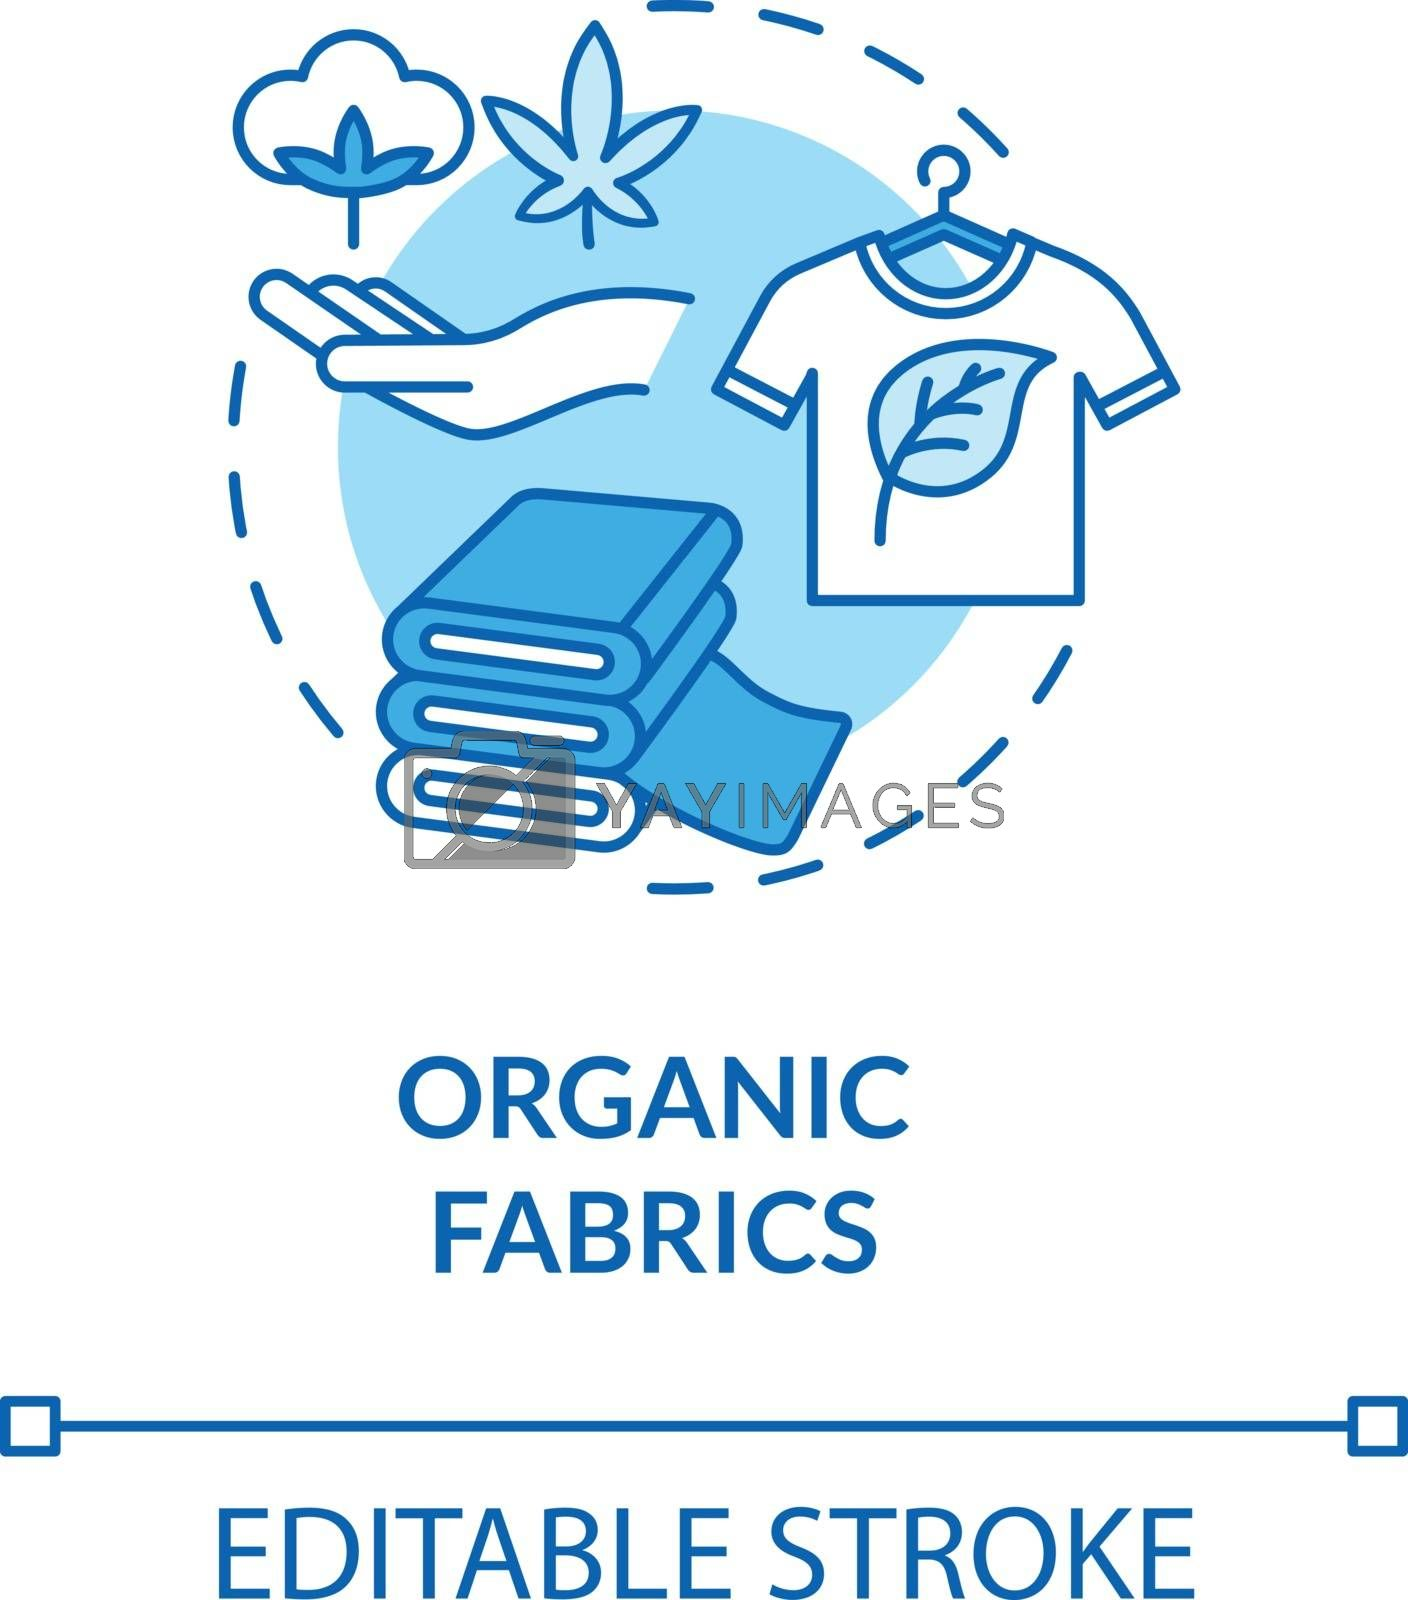 Organic fabrics turquoise concept icon. Eco friendly garment manufacturer. Sustainable material production idea thin line illustration. Vector isolated outline RGB color drawing. Editable stroke